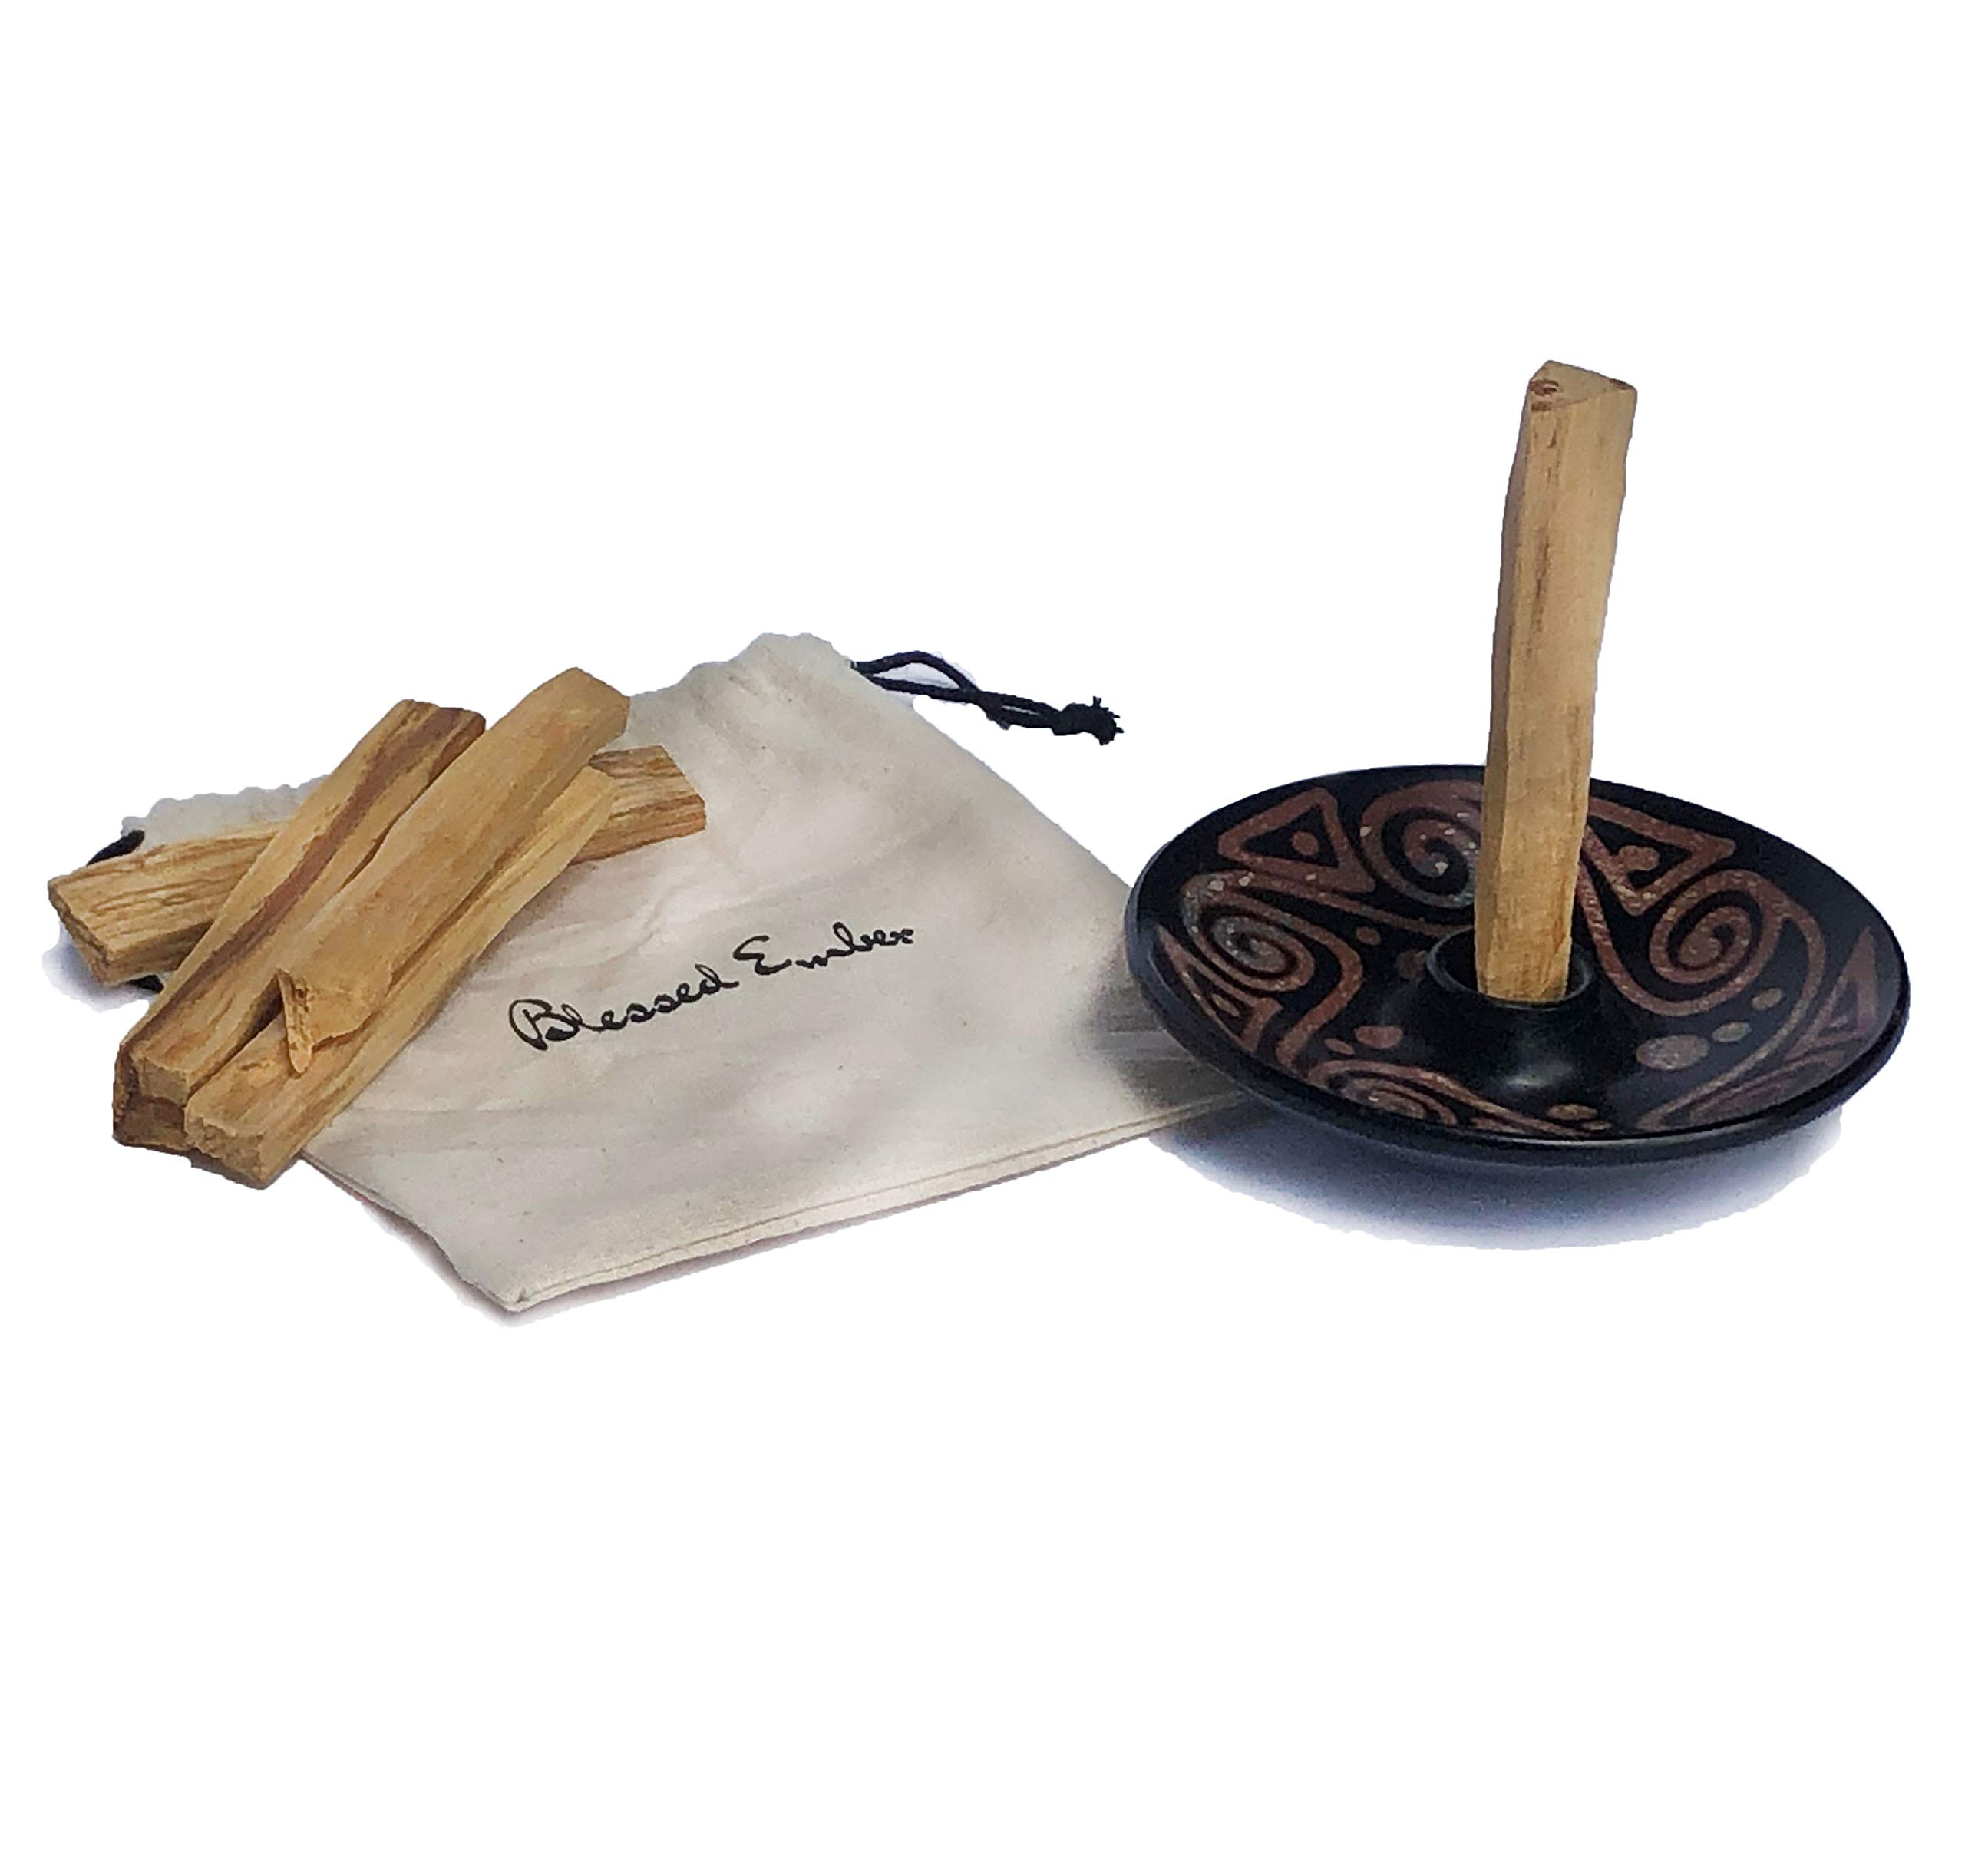 Blessed Ember Palo Santo Holder Handmade Andean Pottery from Chulucanas, Peru, 5 Palo Santo Sticks Included (Designs Vary) by Blessed Ember (Image #2)